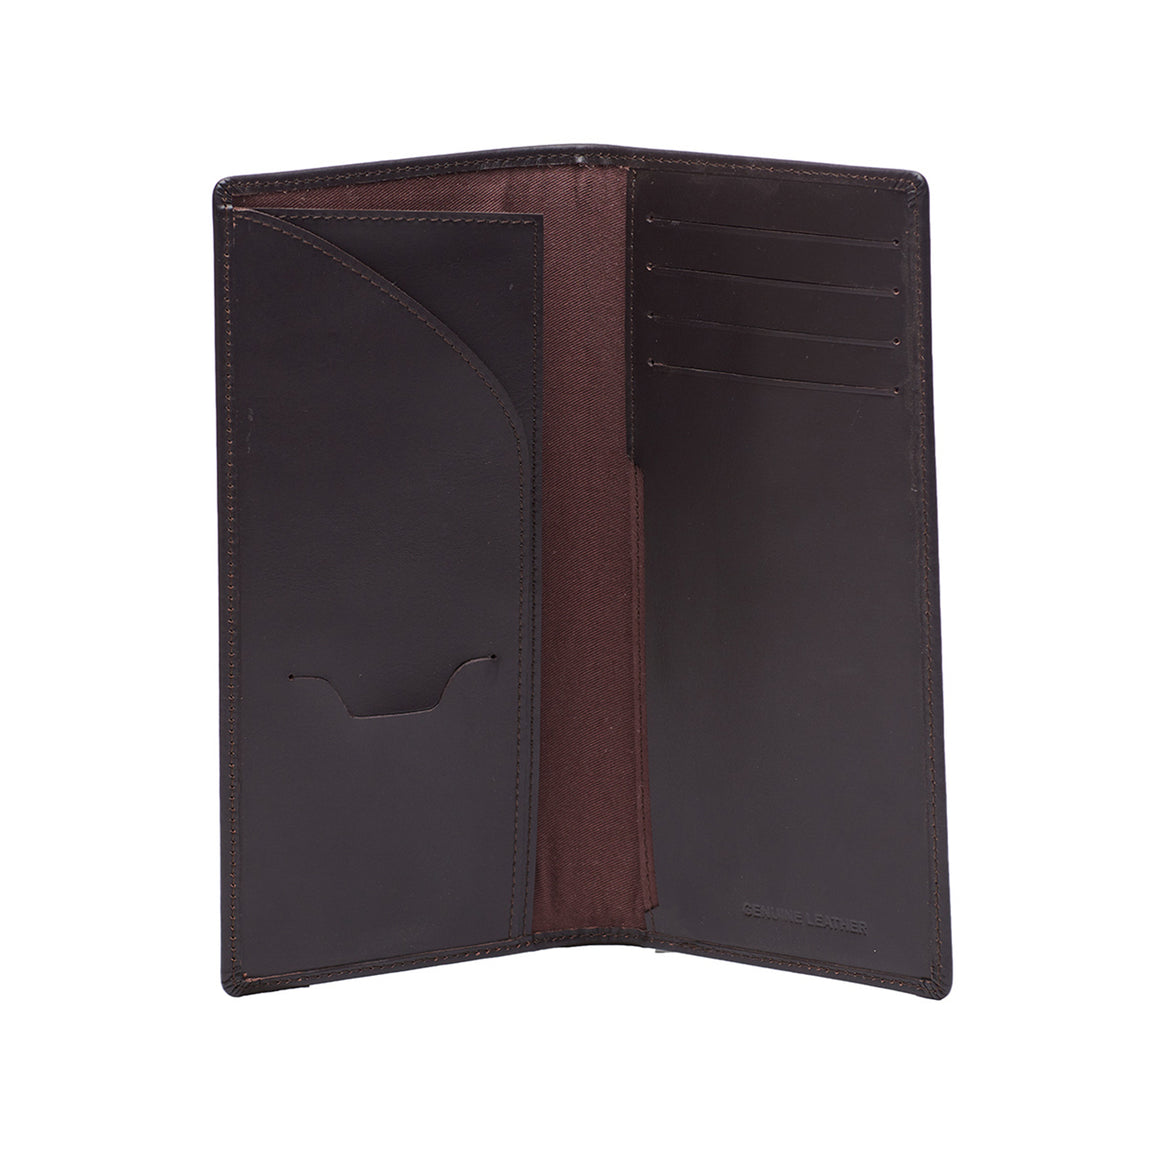 WT 0038 - TOHL PISANI MEN'S WALLET - DARK BROWN